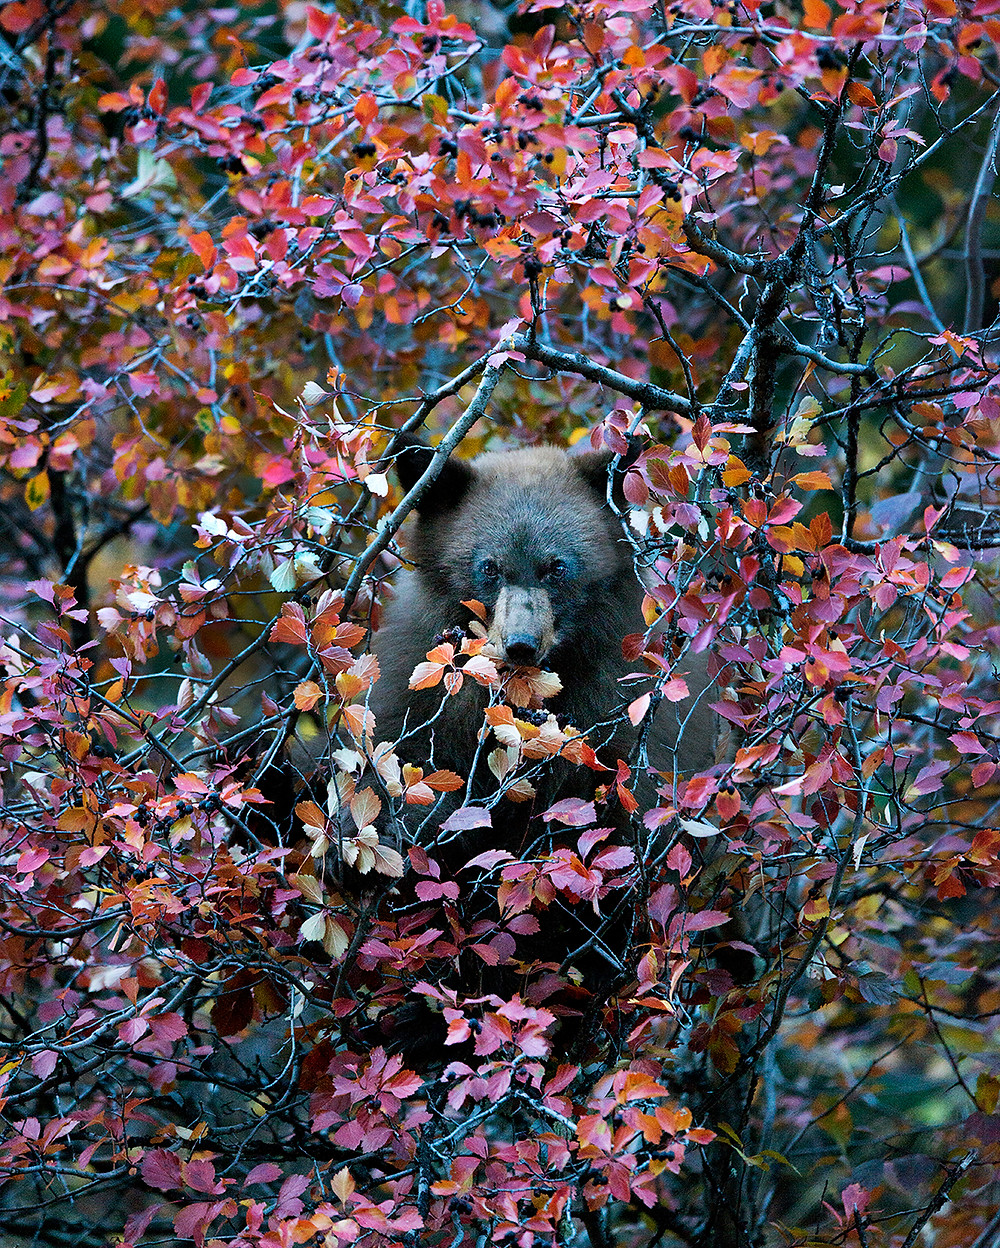 Grizzly bear in the Grand Tetons National Park eating foilage